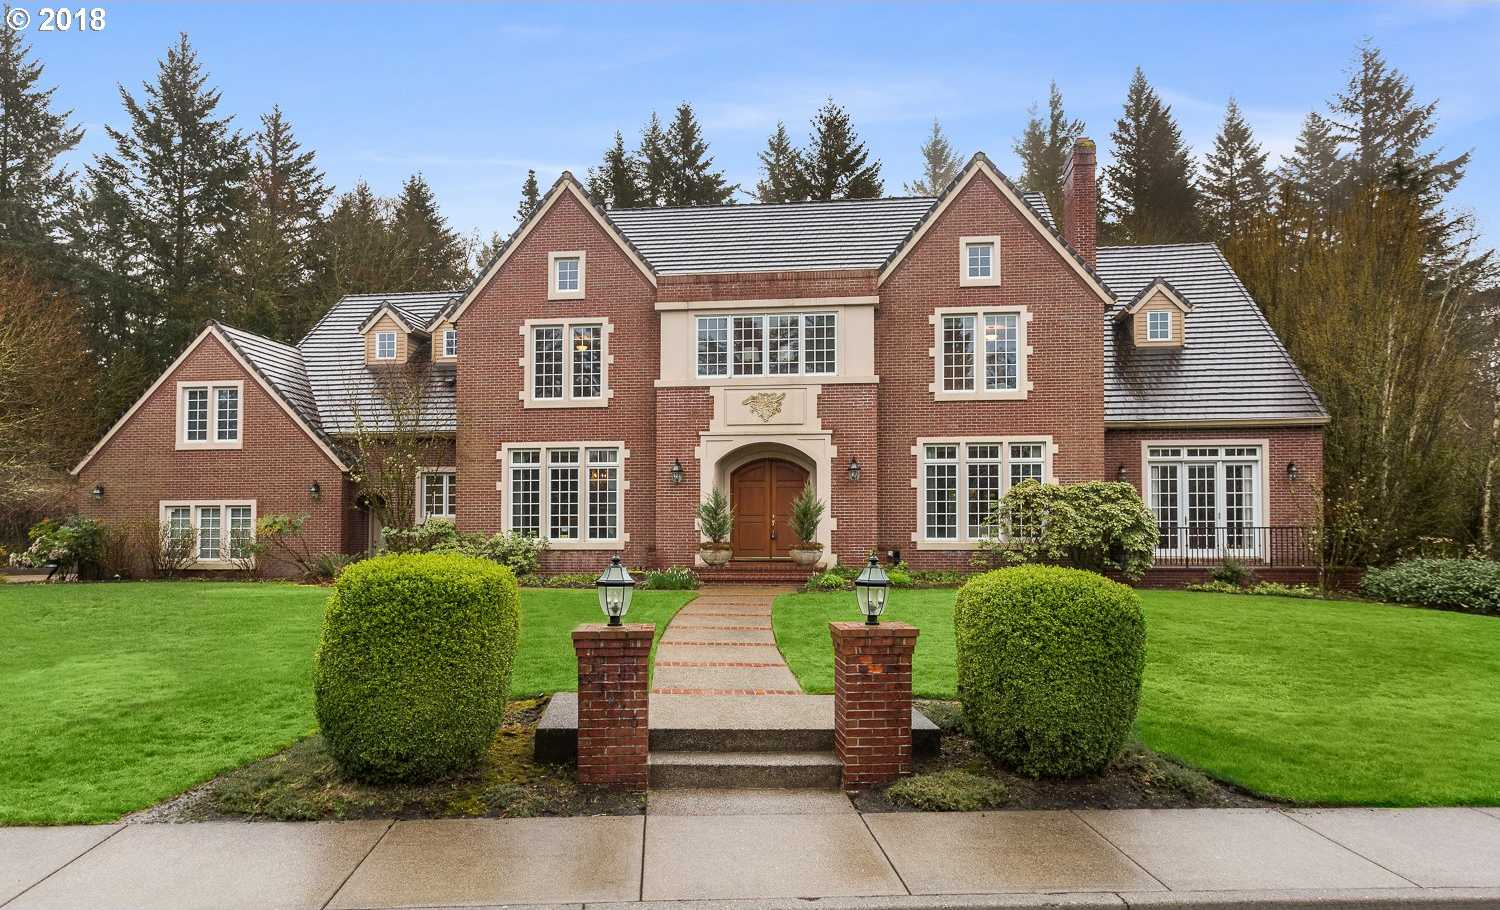 $1,899,000 - 4Br/7Ba -  for Sale in Portland